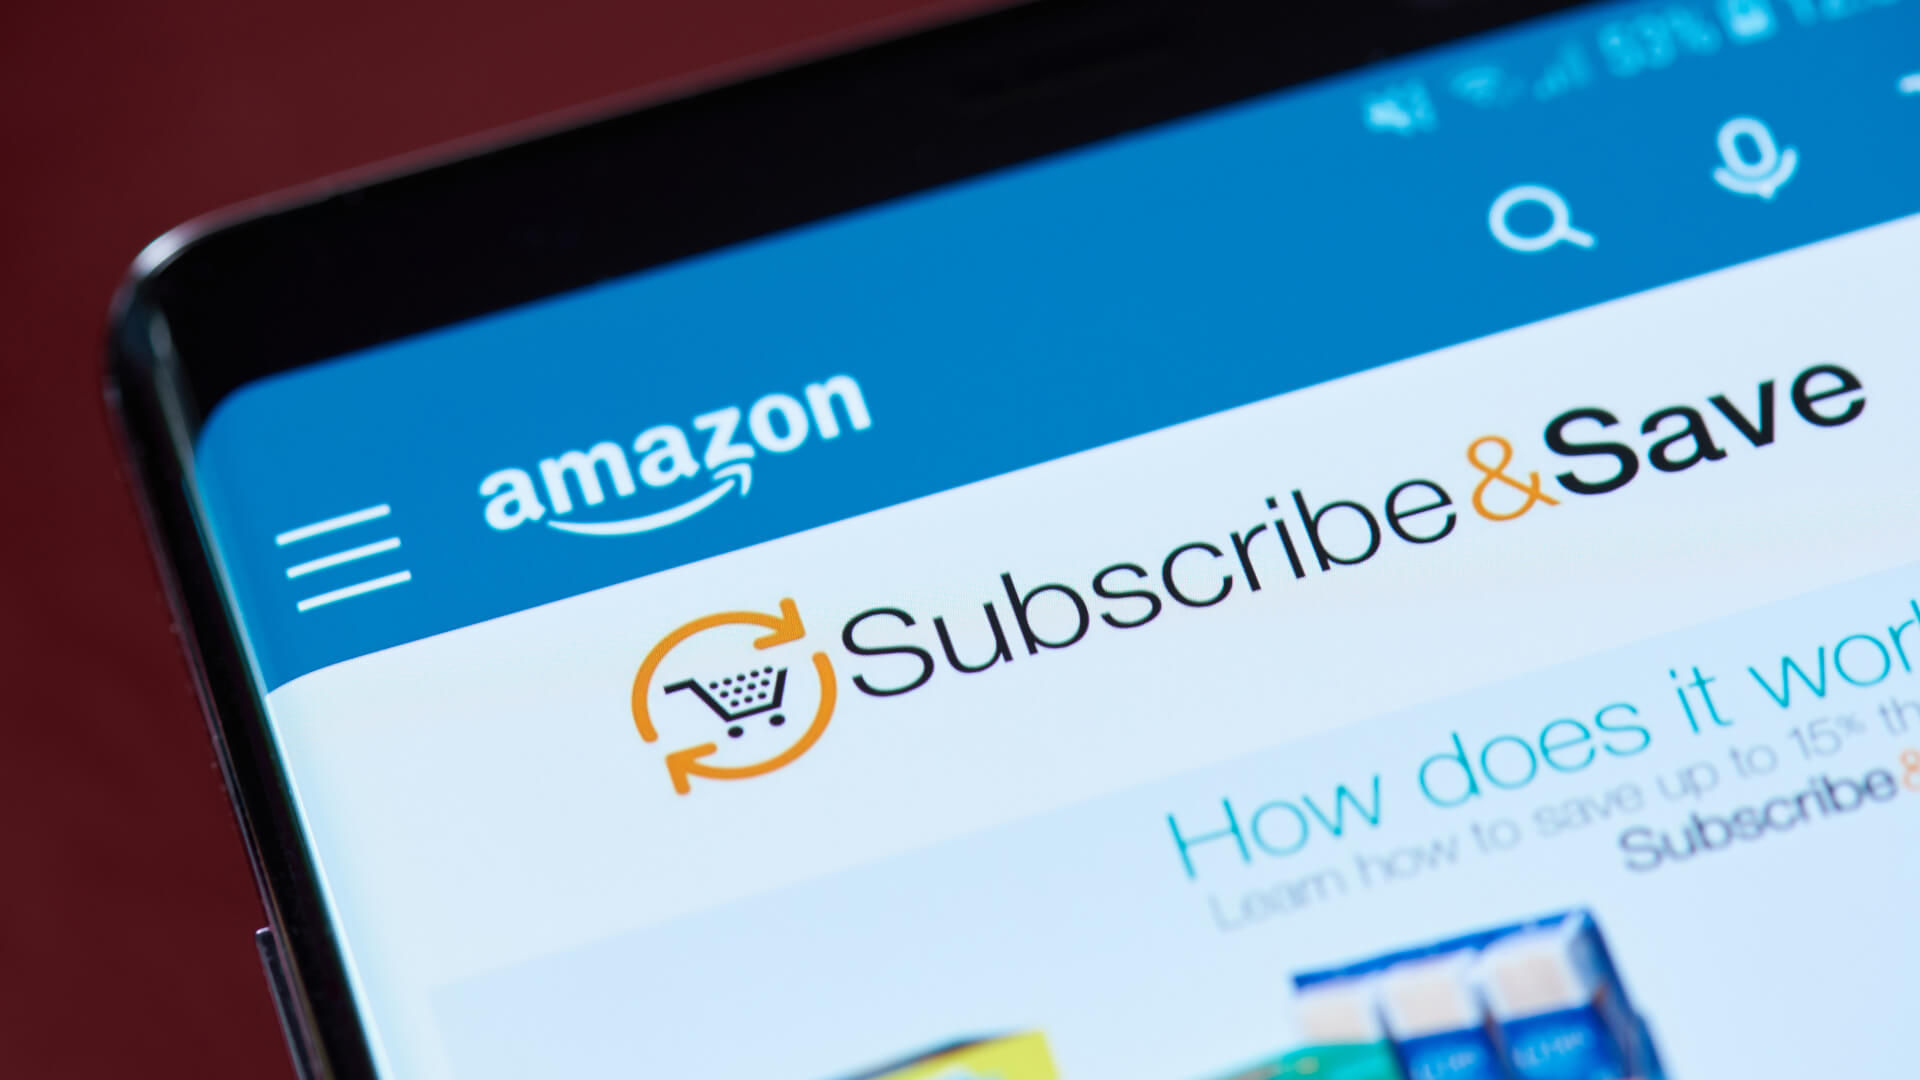 The 37 Mistakes We Make When Shopping at Amazon and Other Retailers